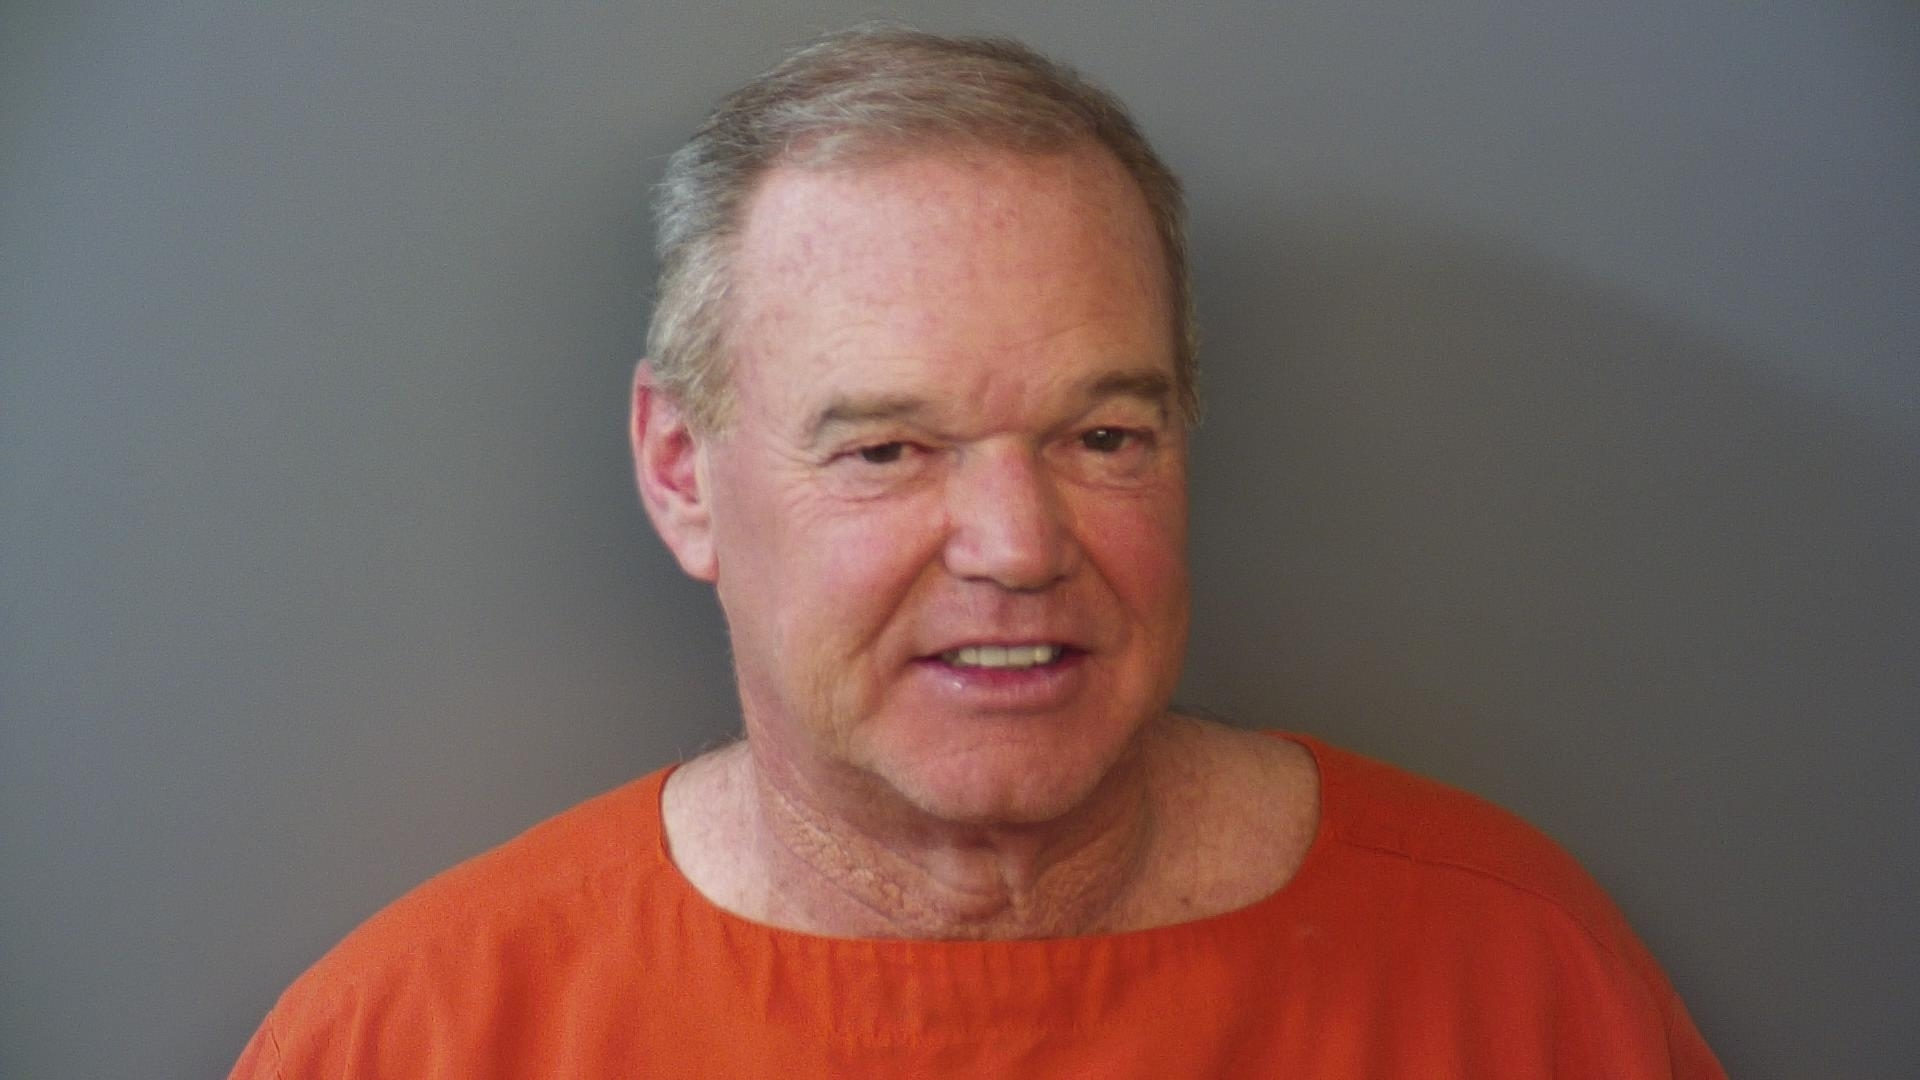 Former Indy 500 champ Al Unser, Jr. arrested for OWI